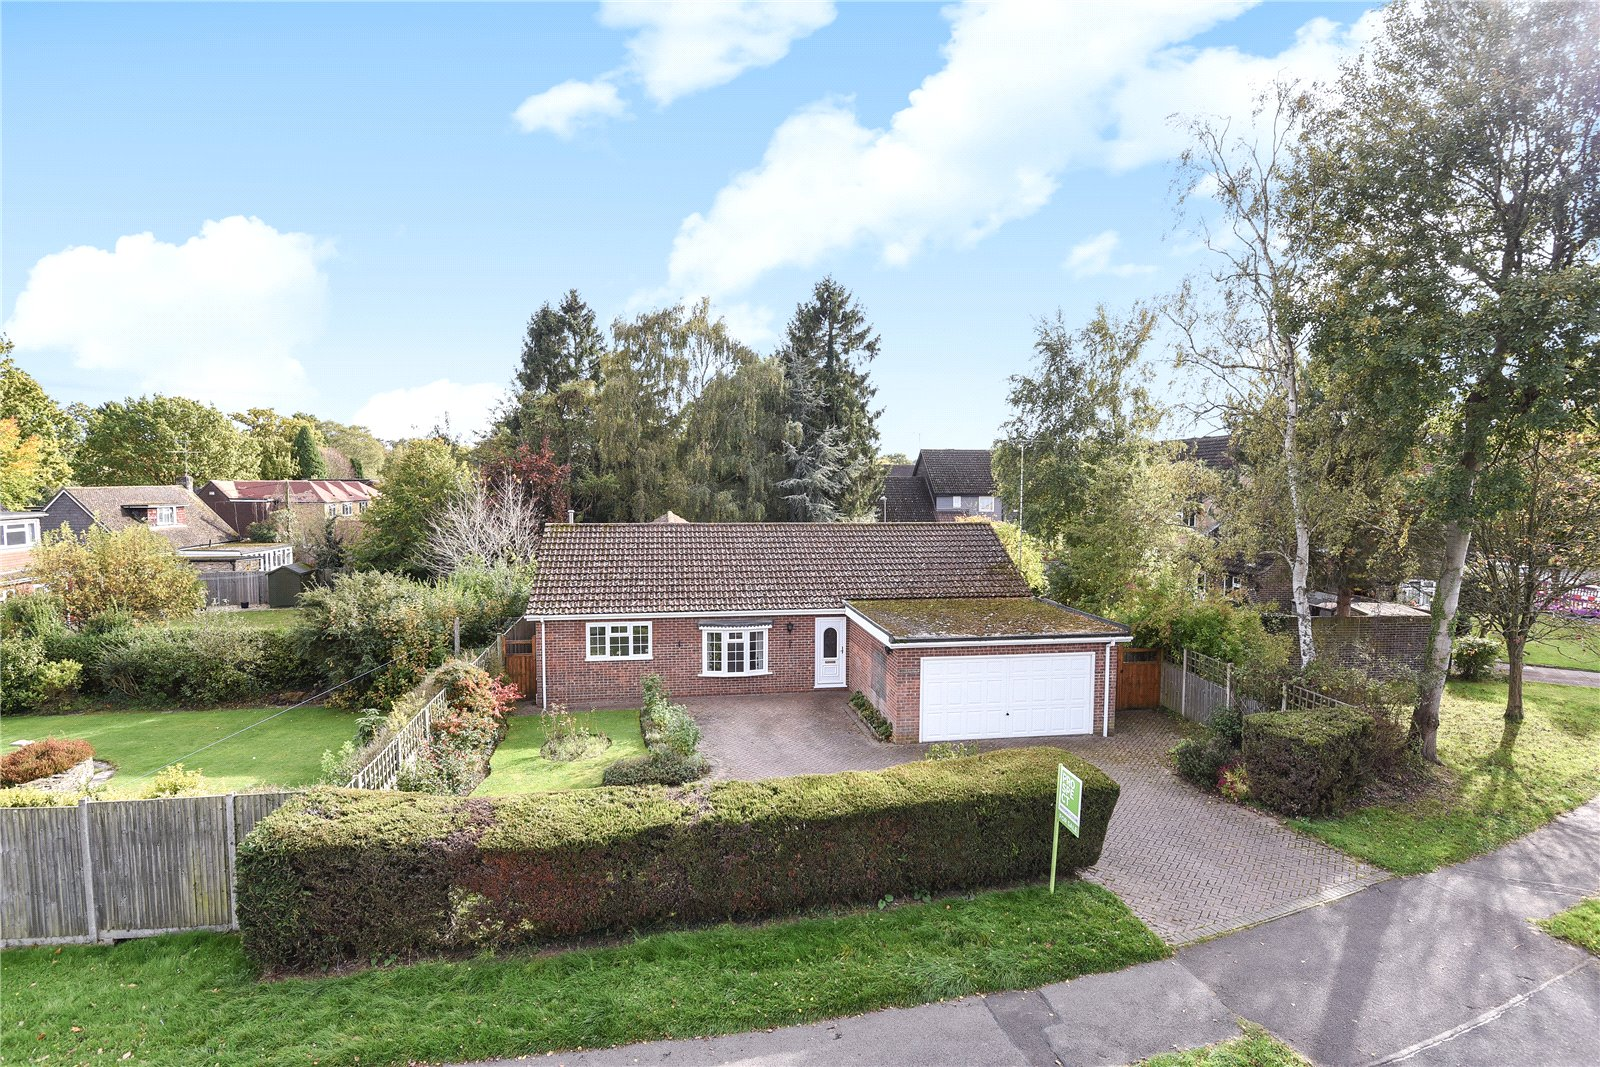 4 Bedrooms Detached Bungalow for sale in Roycroft Lane, Finchampstead, Berkshire, RG40